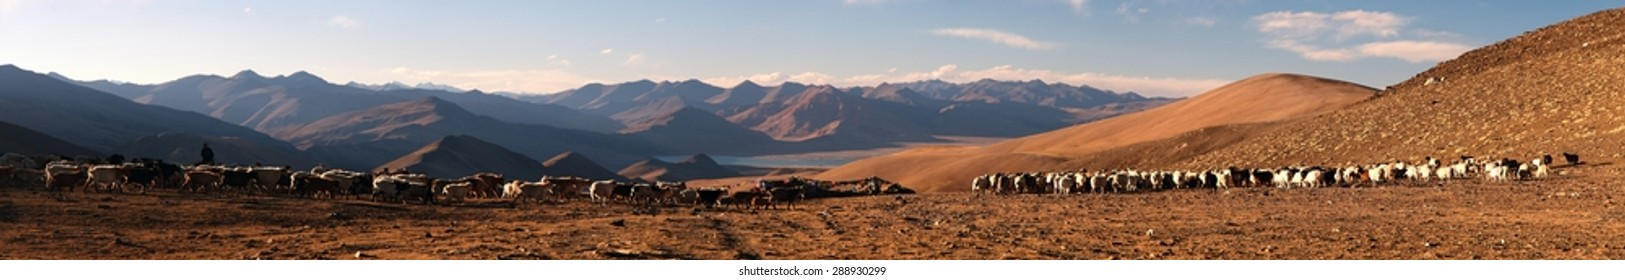 Evening panoramic view of goats and sheeps herd in Indian Himalayas, Rupshu valley near Moriri Lake, Ladakh, Jammu and Kashmir, India